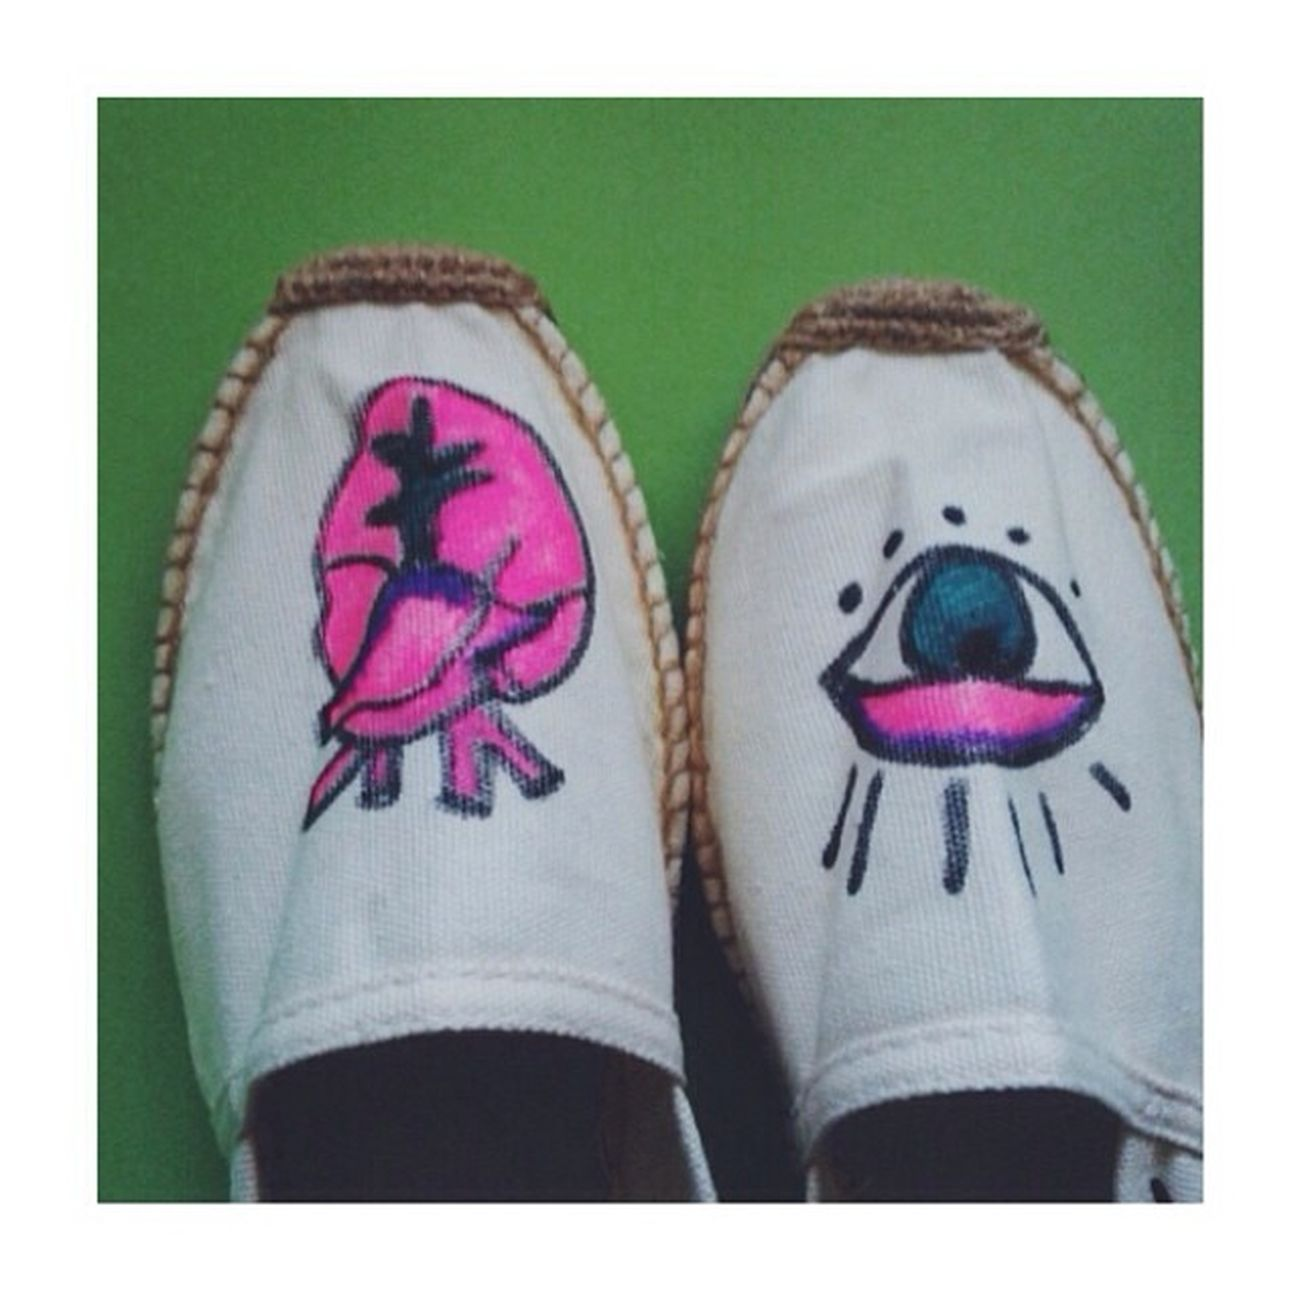 Espadrillas pimpate per la mia Mary Pimp Espadrillas Eye Heart draw art summer clorophillaart